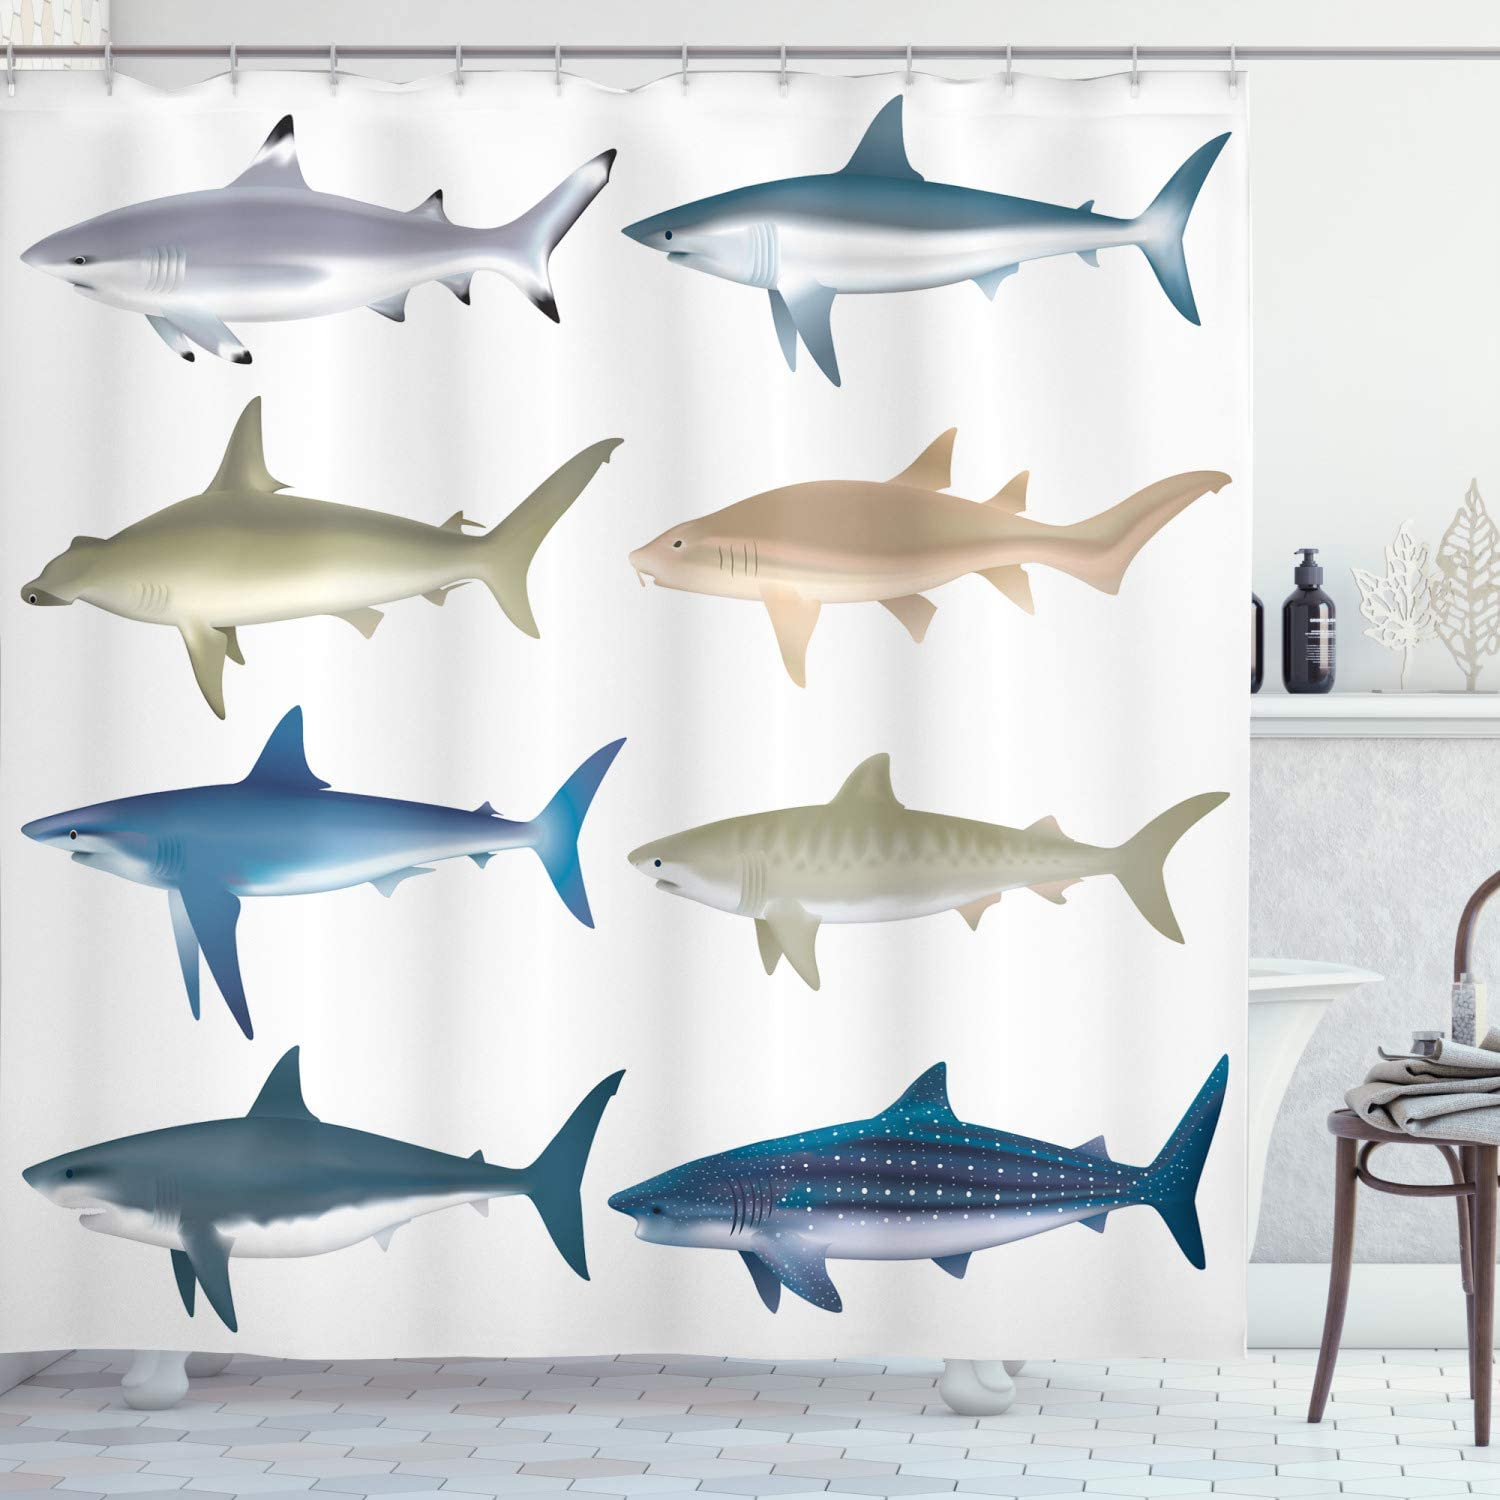 Orange Green Pop Art Fish with Shark Fin Camouflage Cheat Humor Strategy Beware Theme 70 Inches Ambesonne Sea Animal Decor Shower Curtain by Fabric Bathroom Decor Set with Hooks